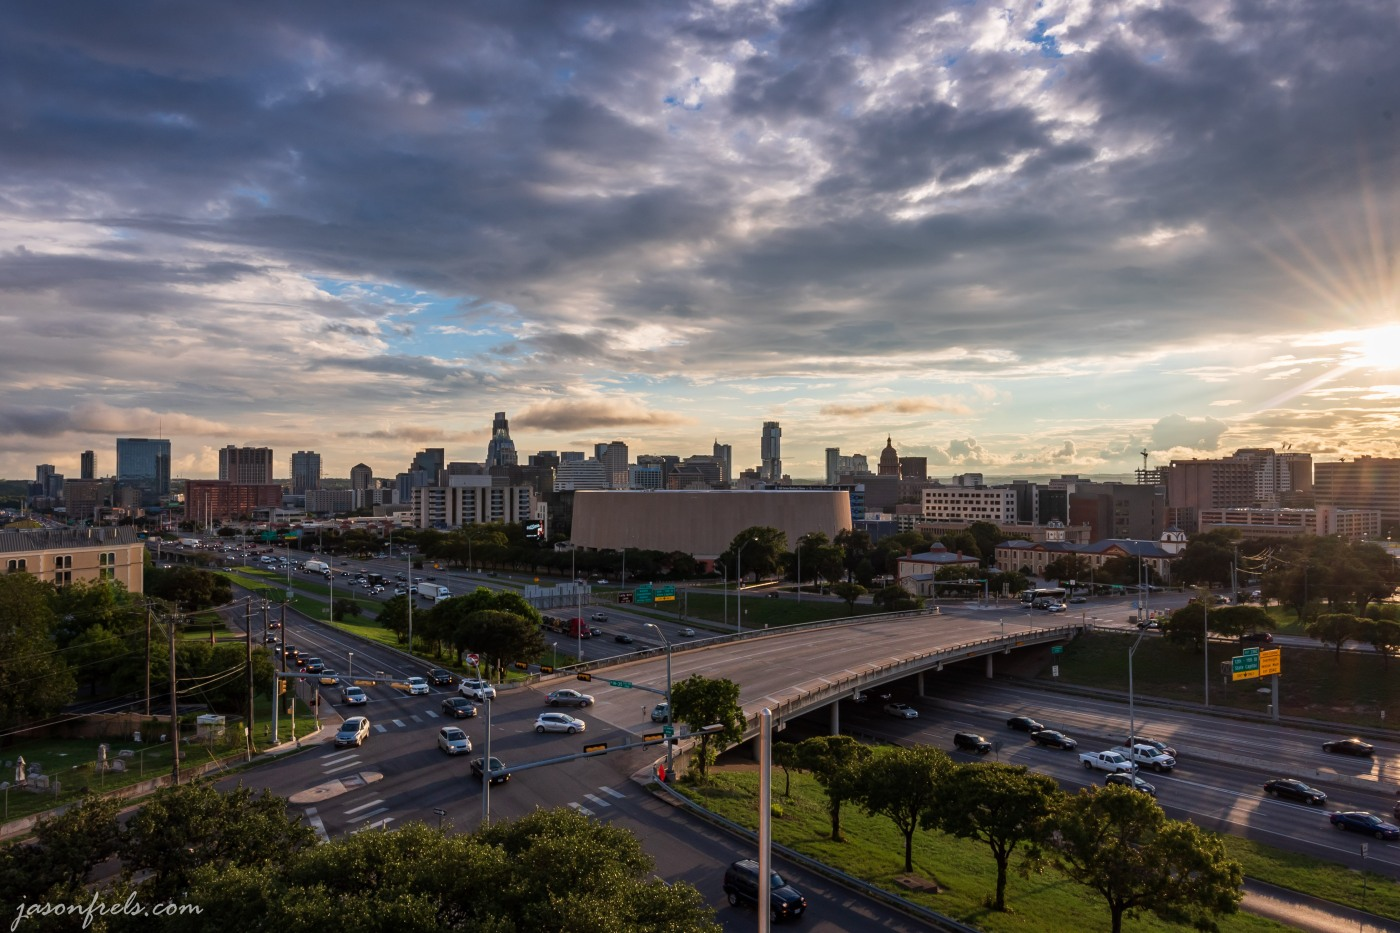 Downtown Austin Texas skyline at sunset HDR merge